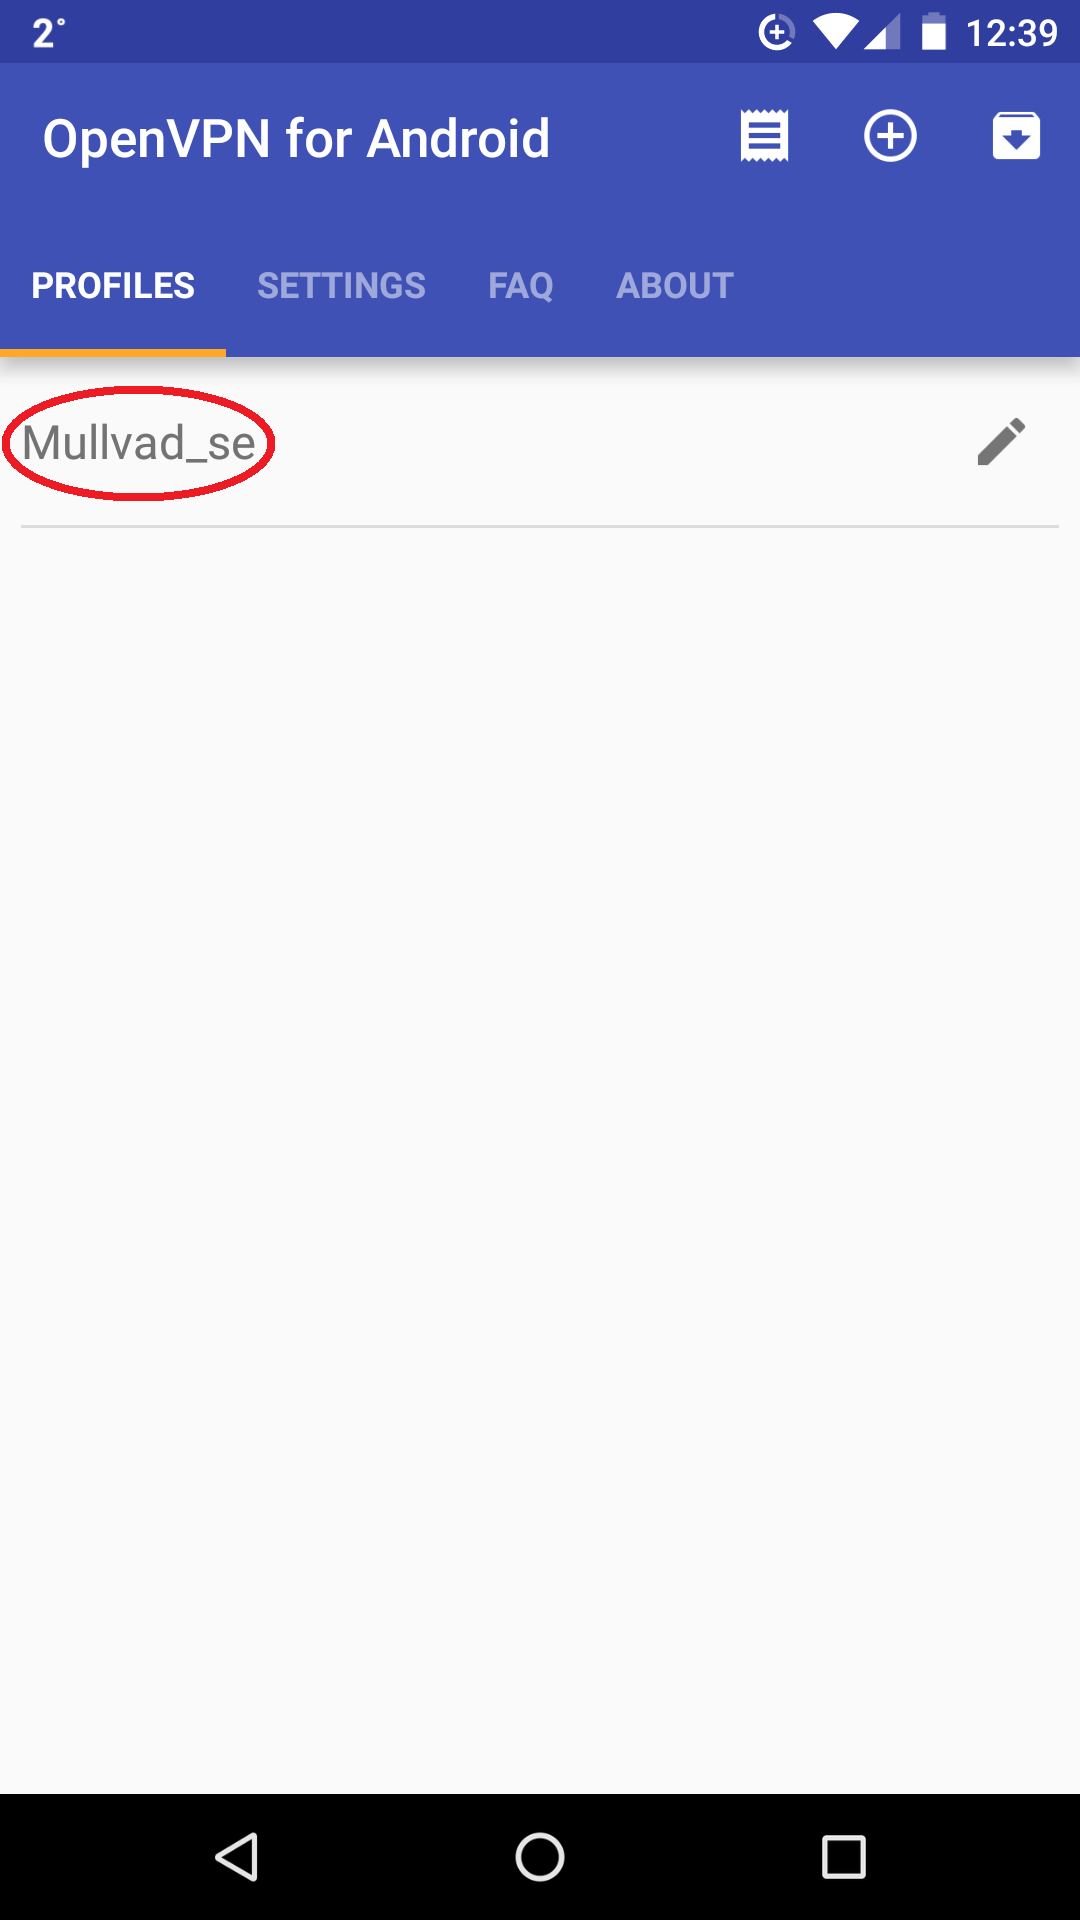 Mullvad on Android / Chromebook devices - Guides | Mullvad VPN